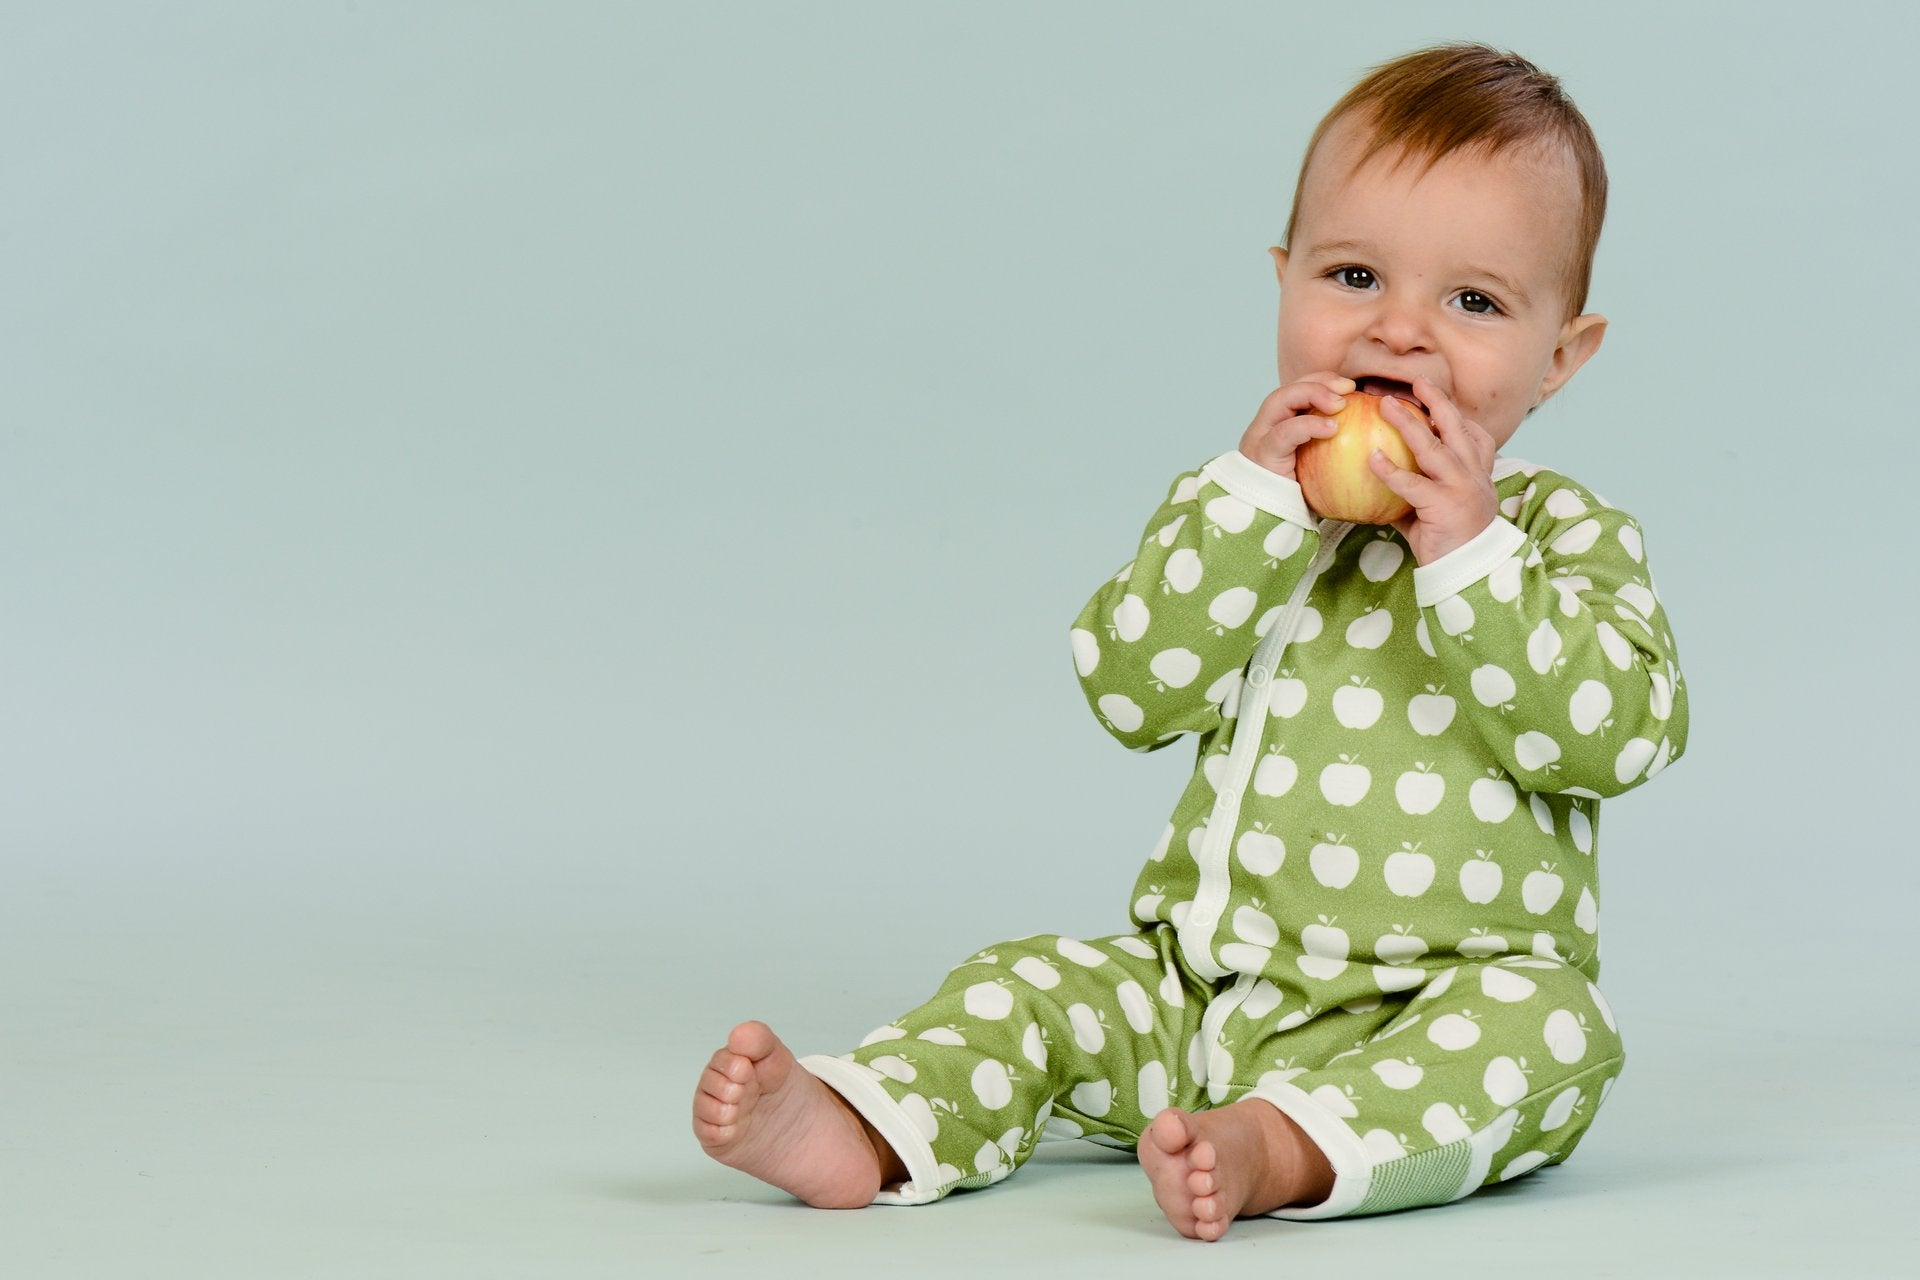 Finest quality of organic baby clothes, rompers, bodysuits, blankets, bibs, bonnets, hats, sleepwear, layette sets.